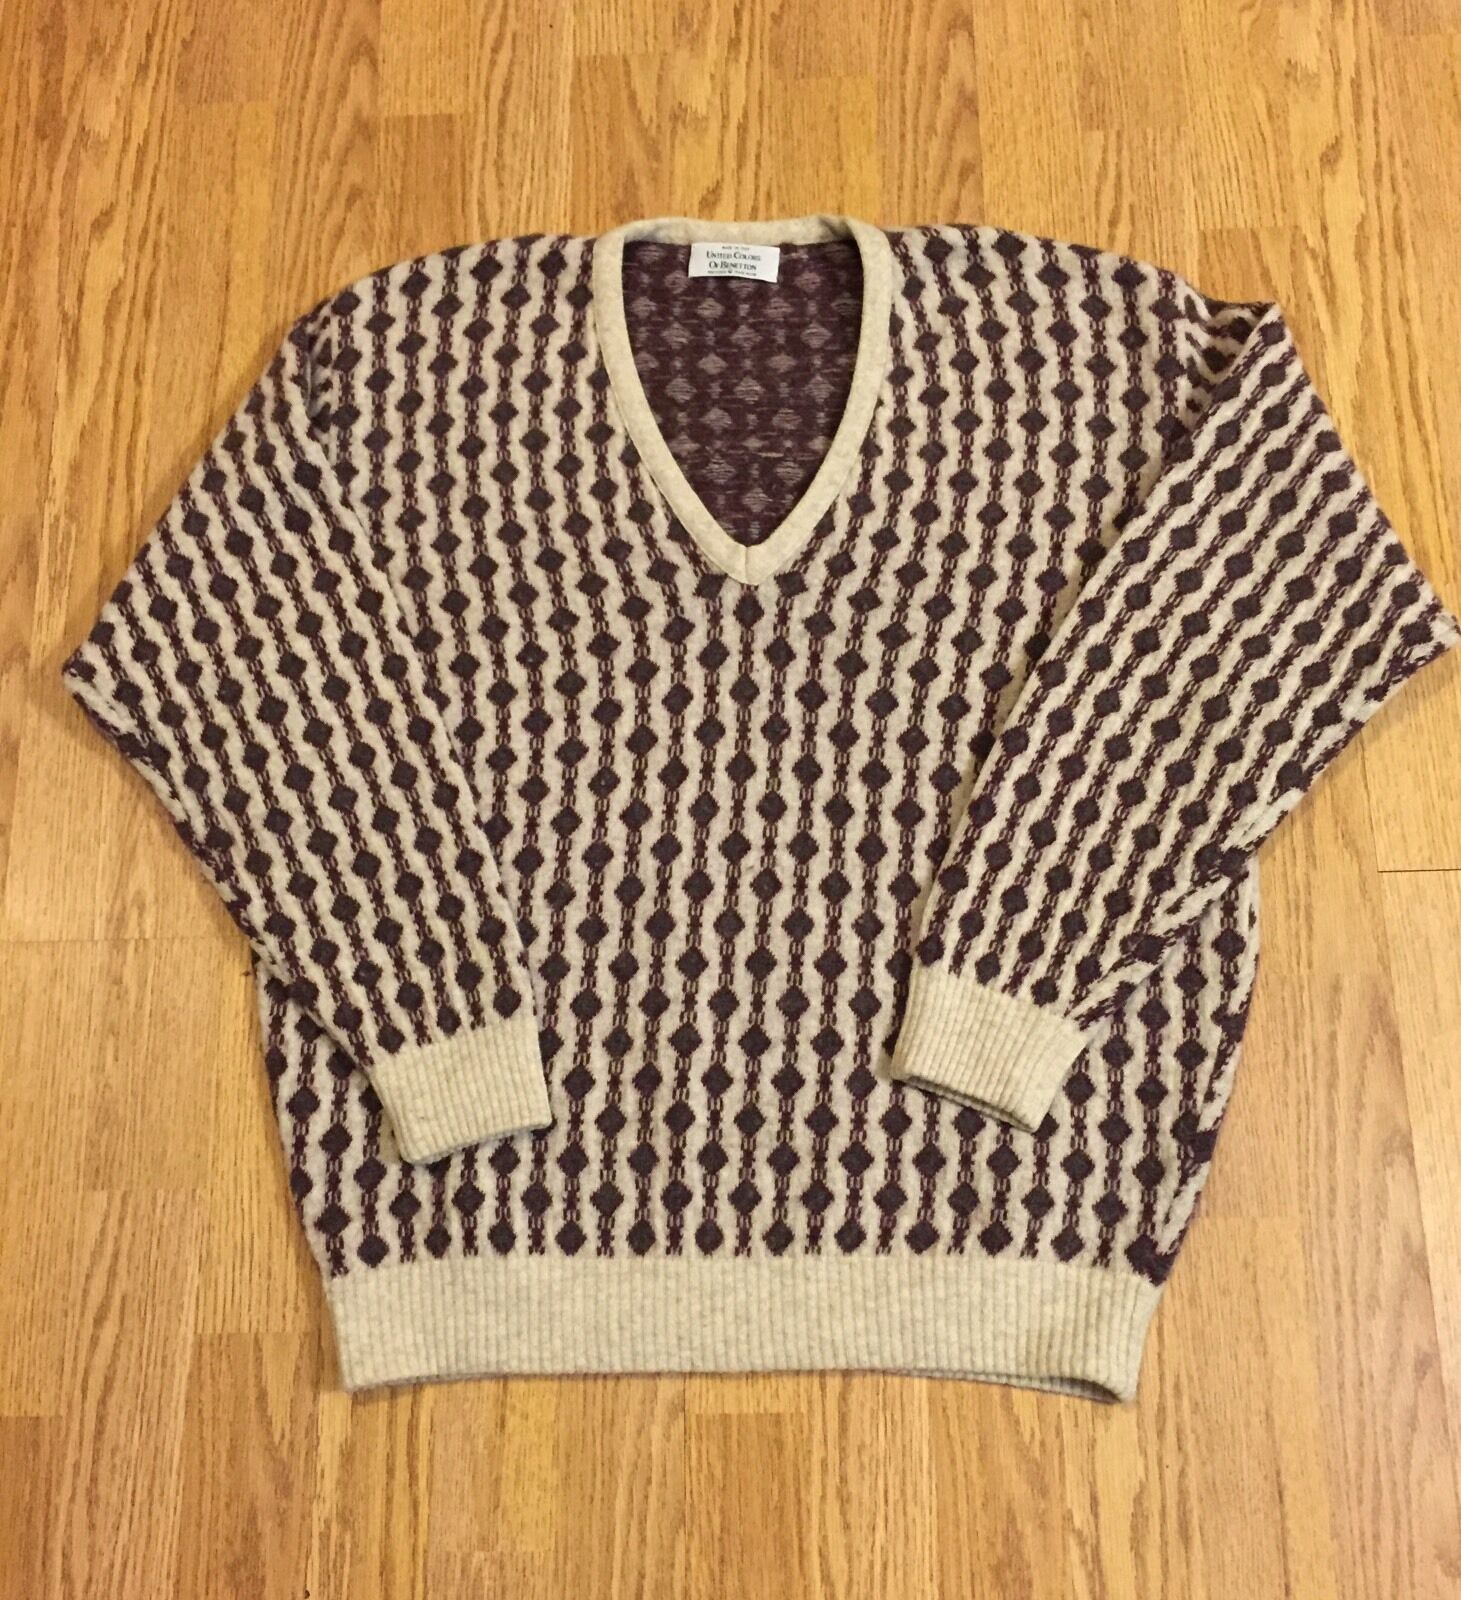 Vintage United colors of Benetton Sweater - Made in